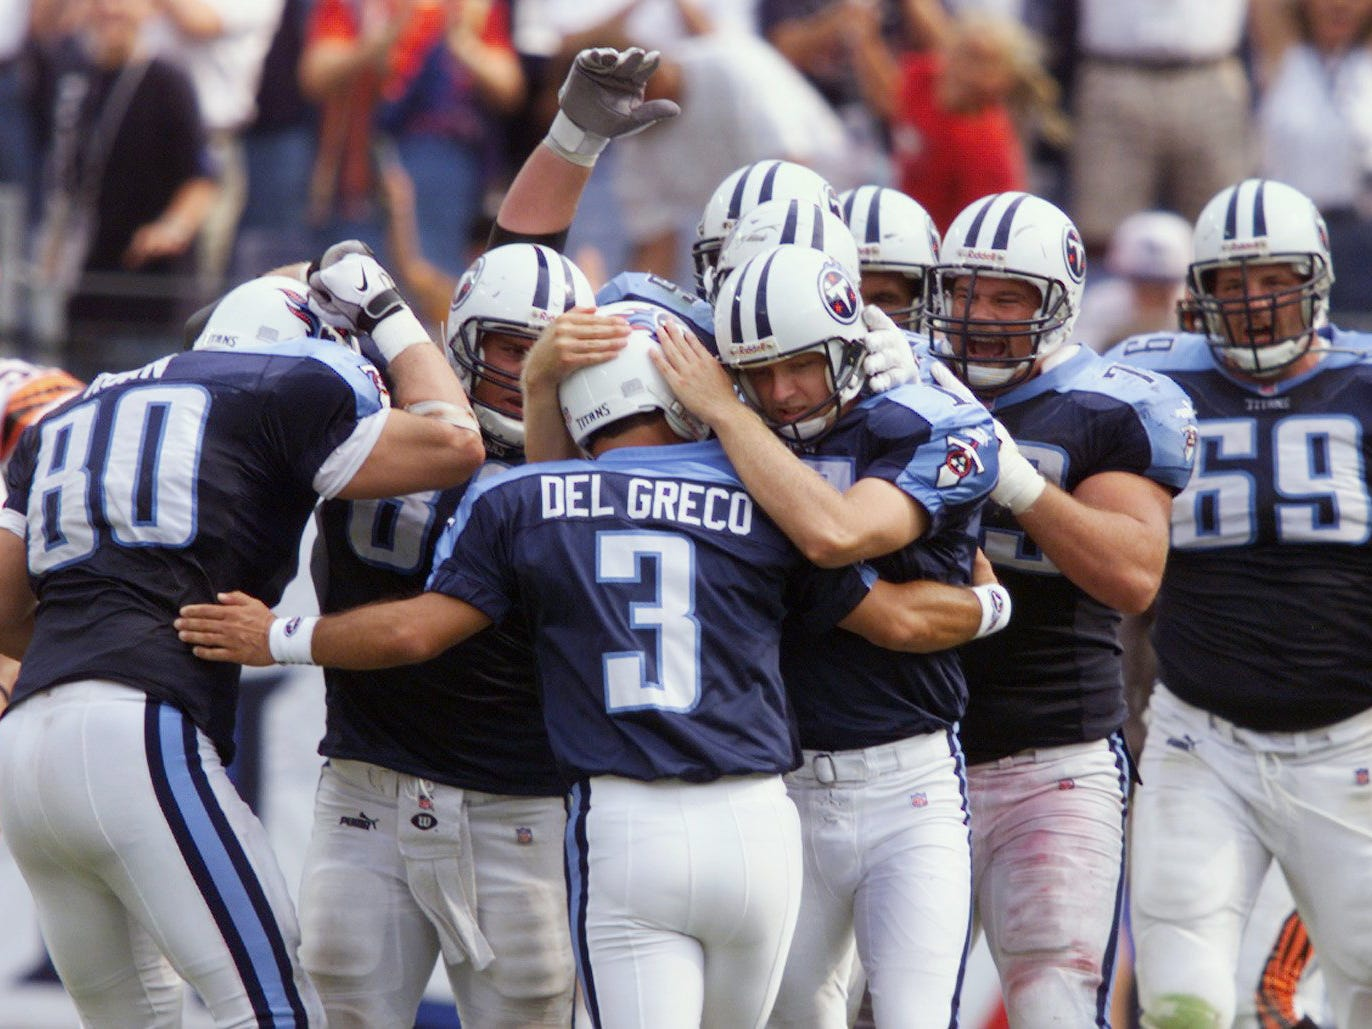 Al Del Grecco (3) is being congratulate by his teammates after making the game winning field goal at the end of their game for a 36-35 victory over Cincinnati Bengals in their home opener Sept. 12, 1999.